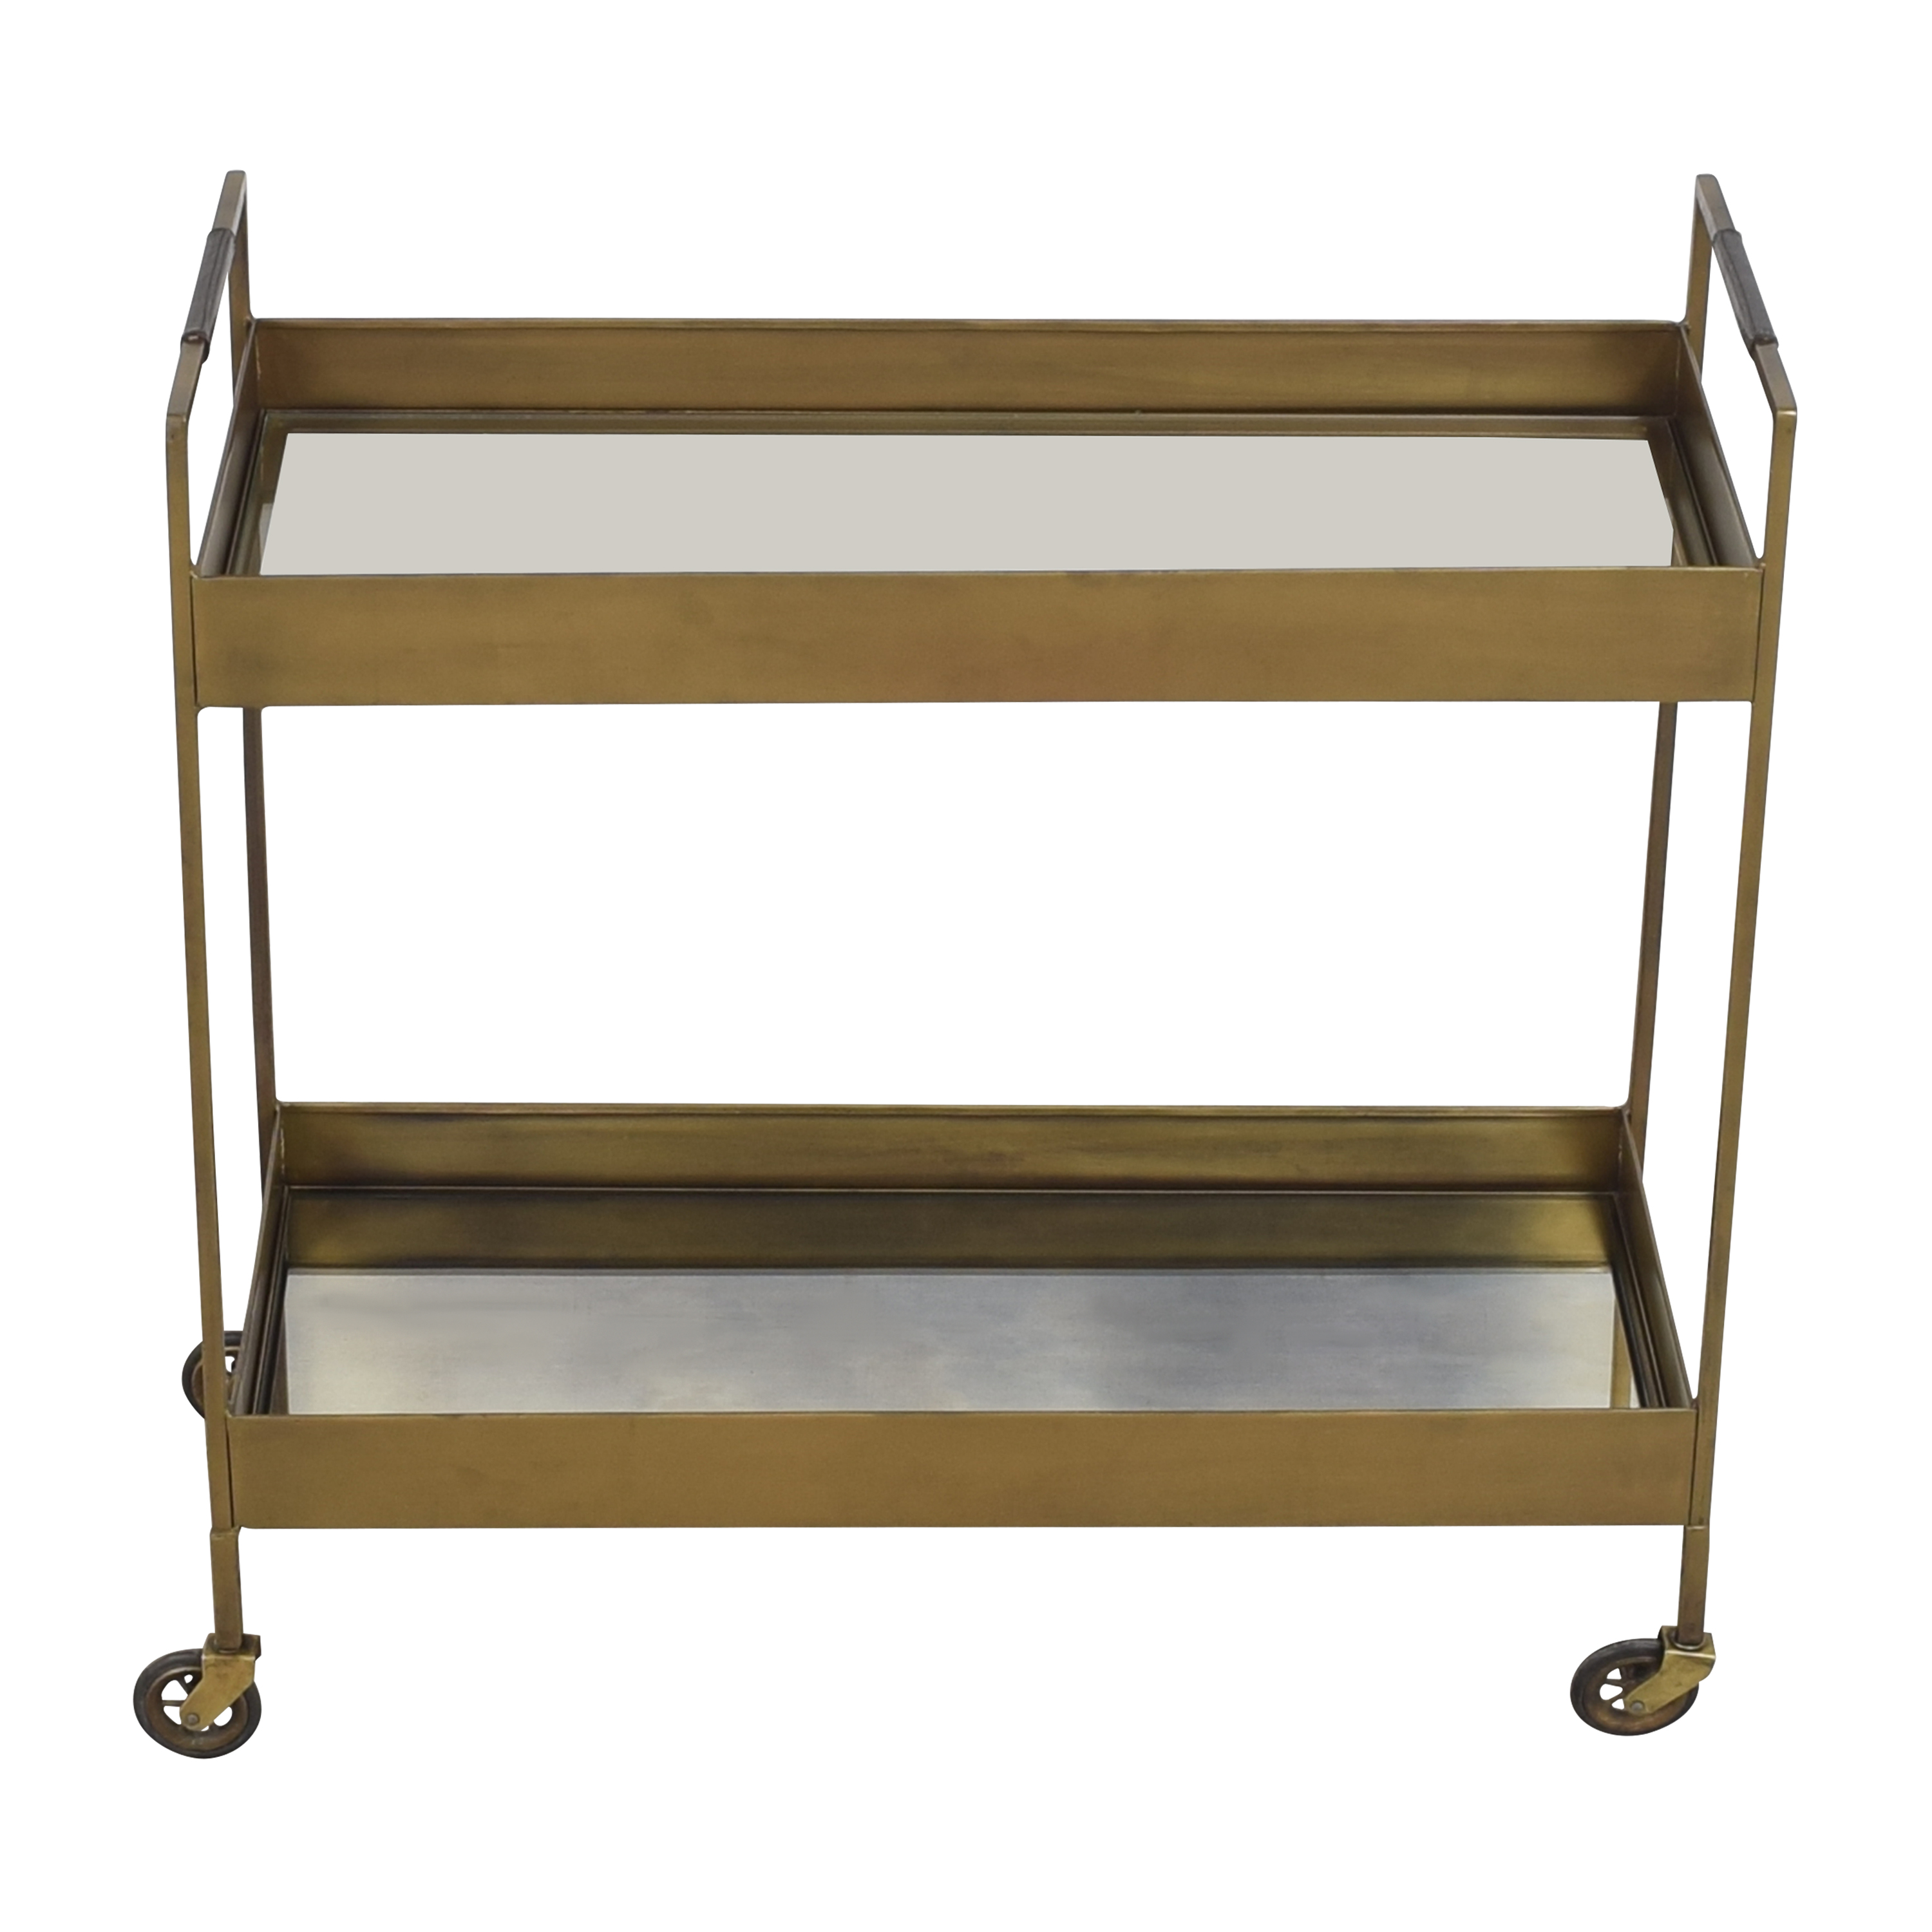 Antique-Style Mirrored Bar Cart on sale